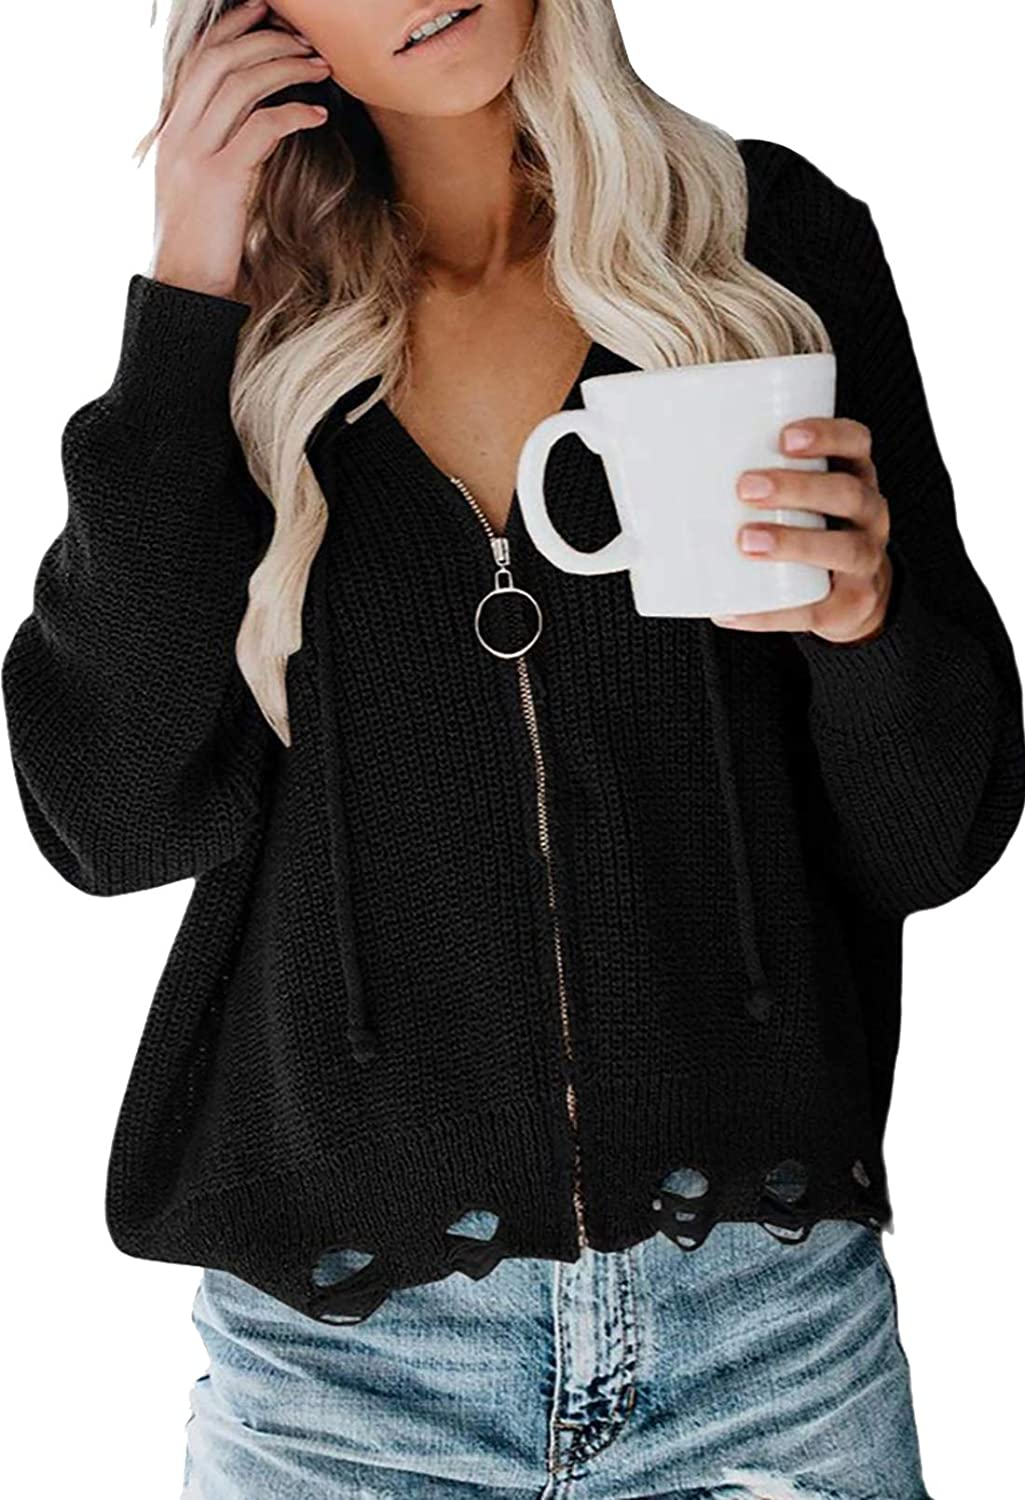 Women's Hooded Cardigan Sweaters Oversized Batwing Long Sleeve Knit Zip Up Open Front Knitted Jacket Coat